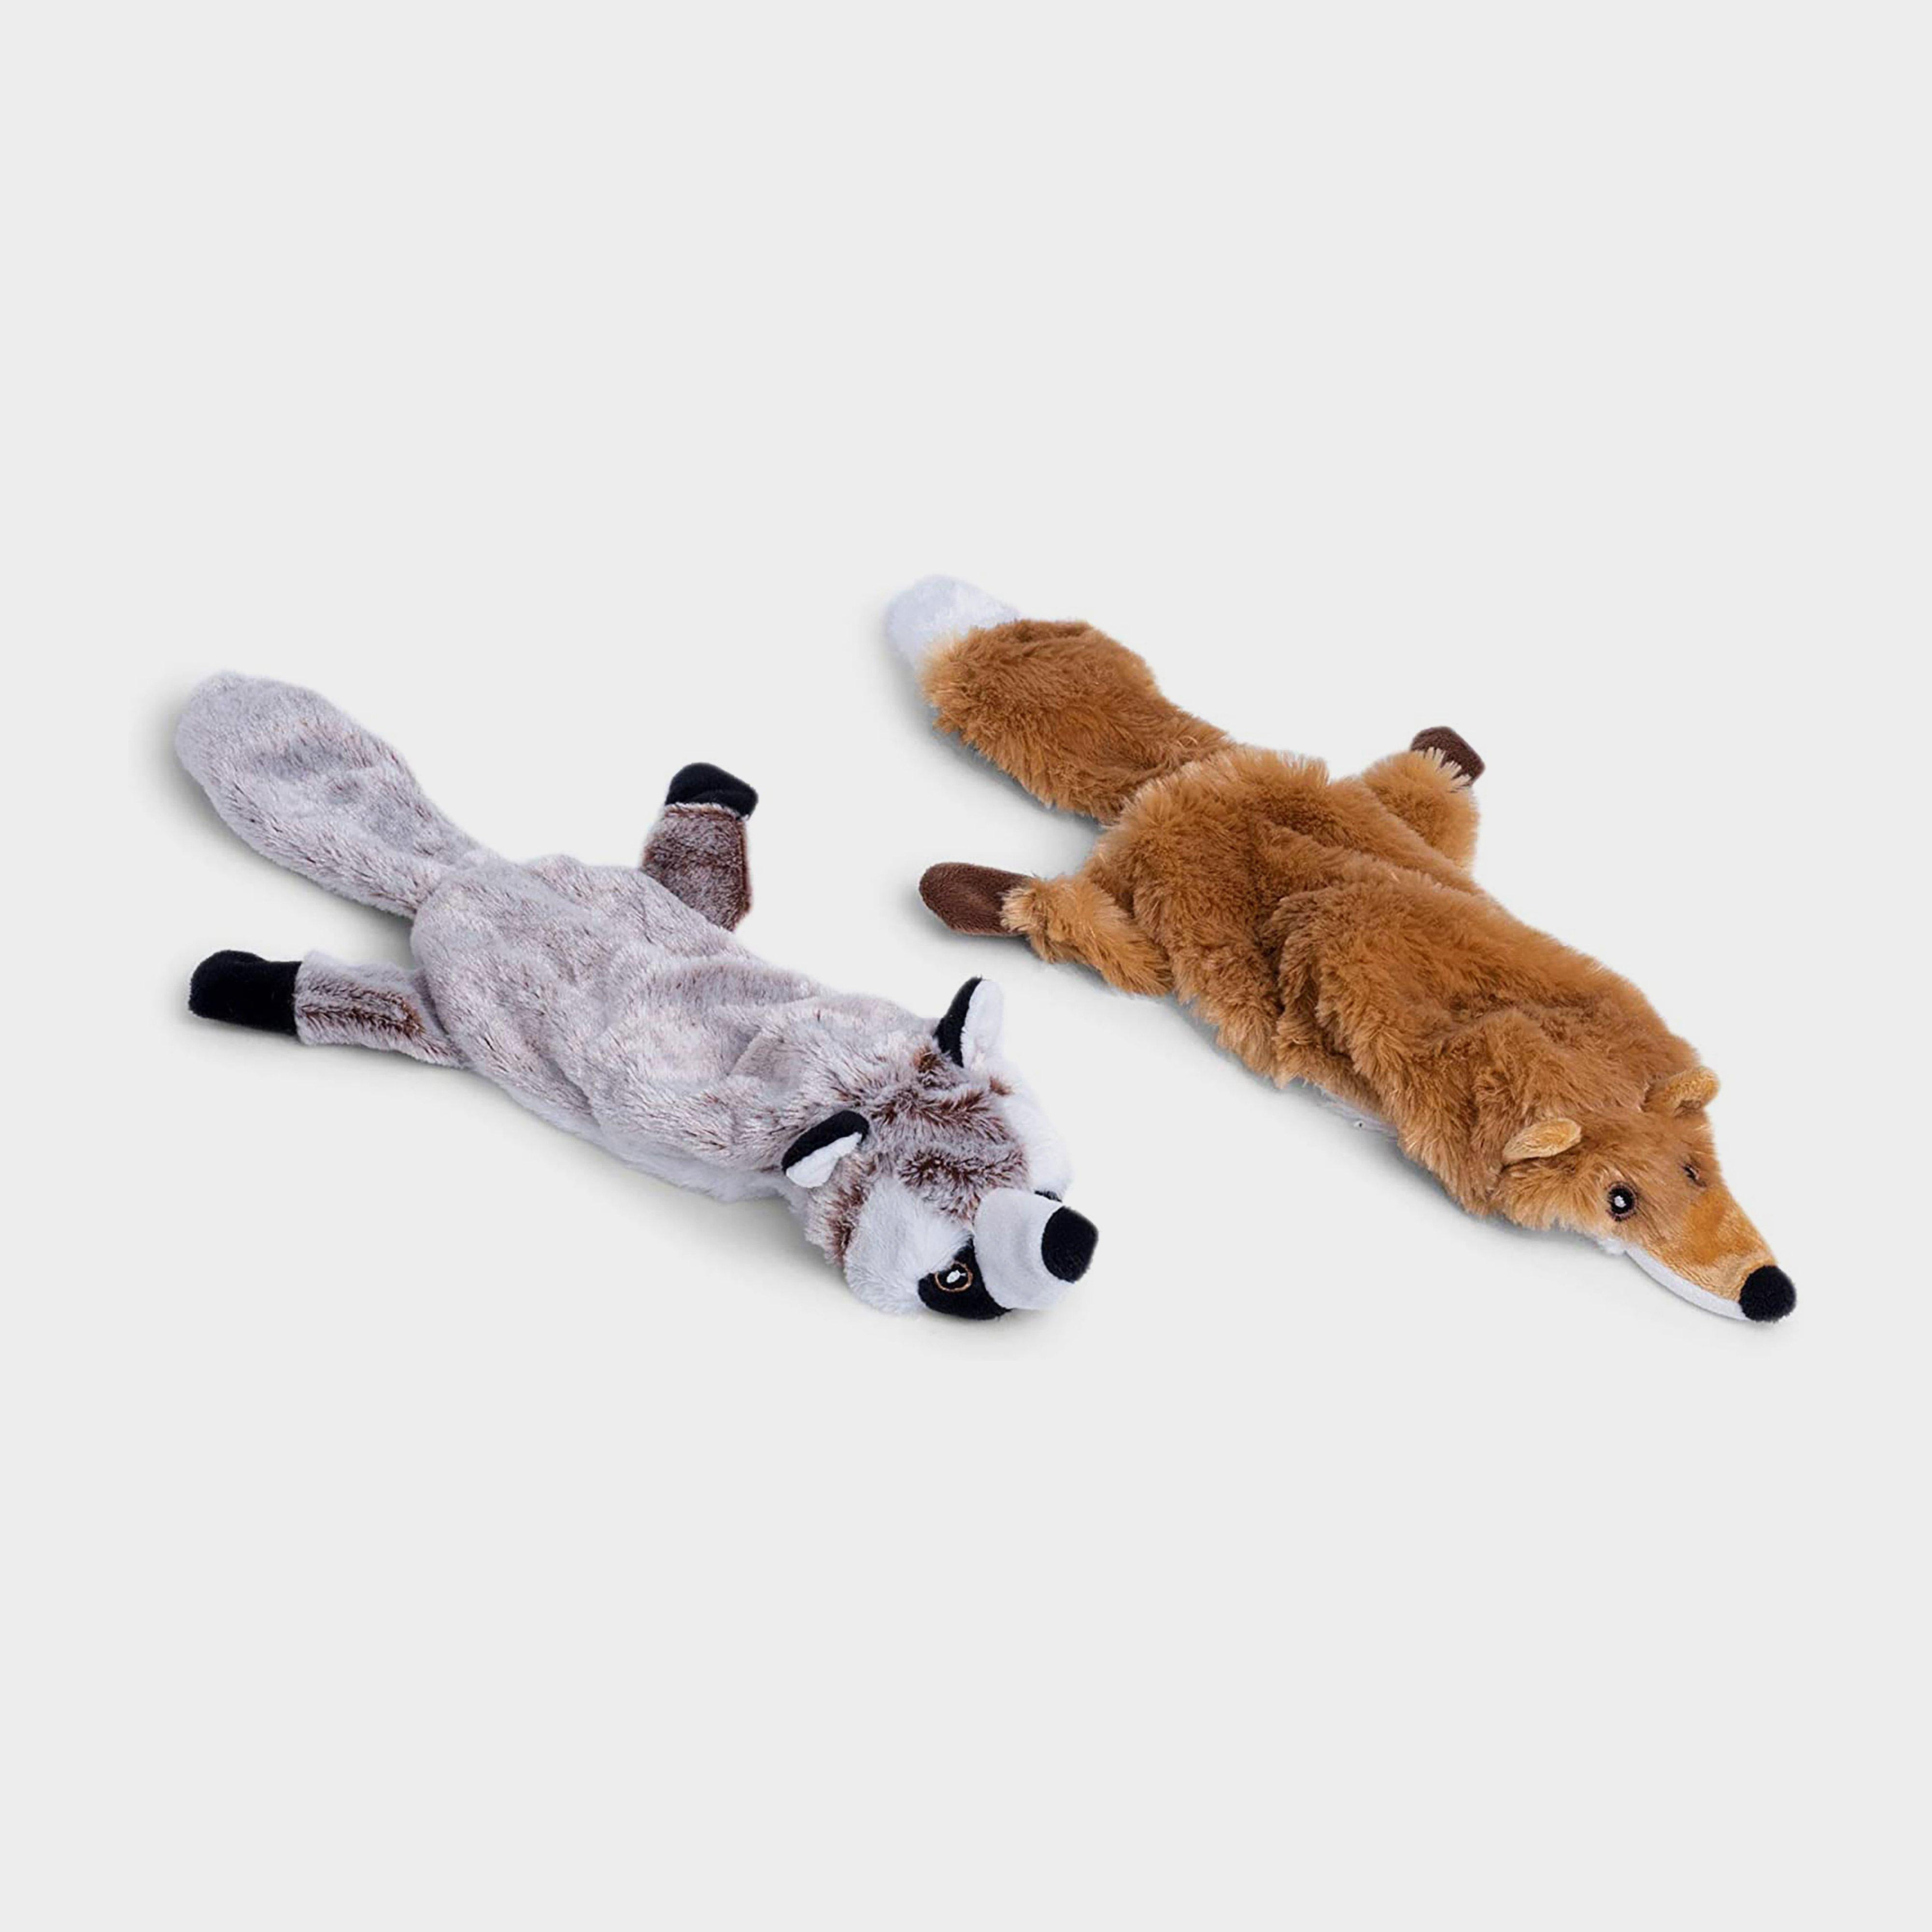 Image of Petface Woodland Critters - Assorted/Assorted, ASSORTED/ASSORTED